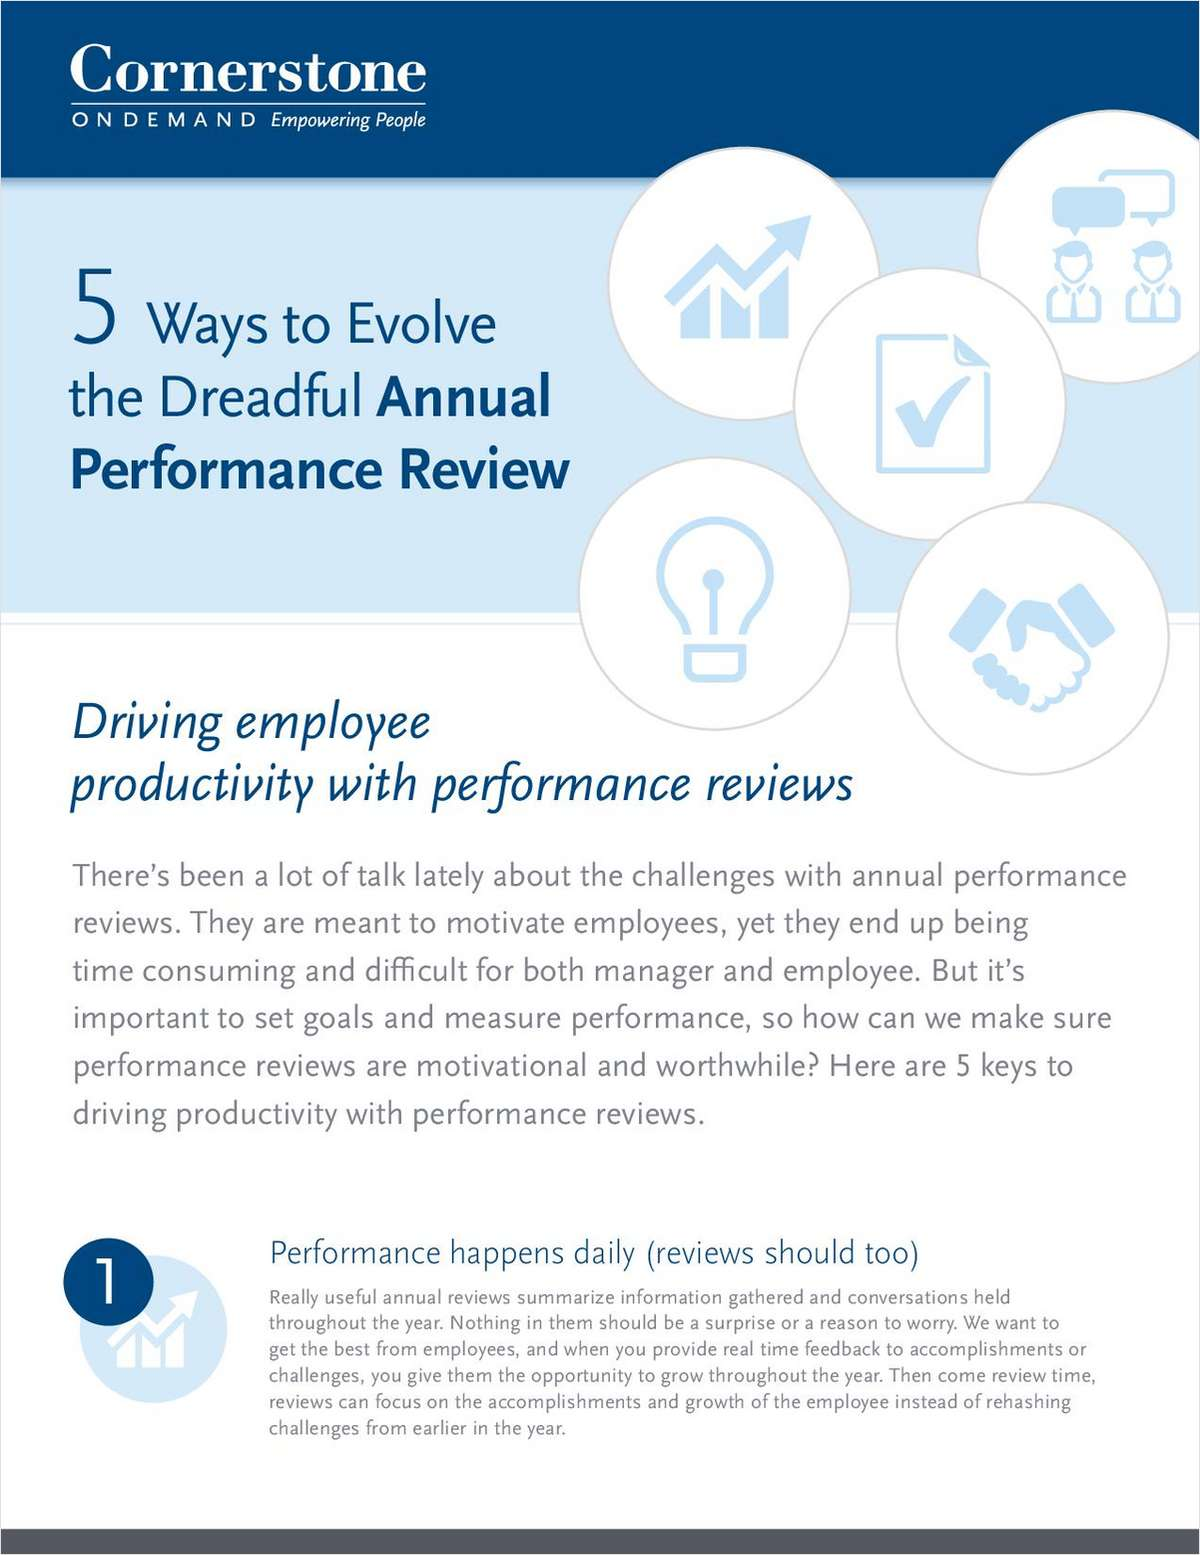 5 Ways to Evolve the Dreadful Annual Performance Review